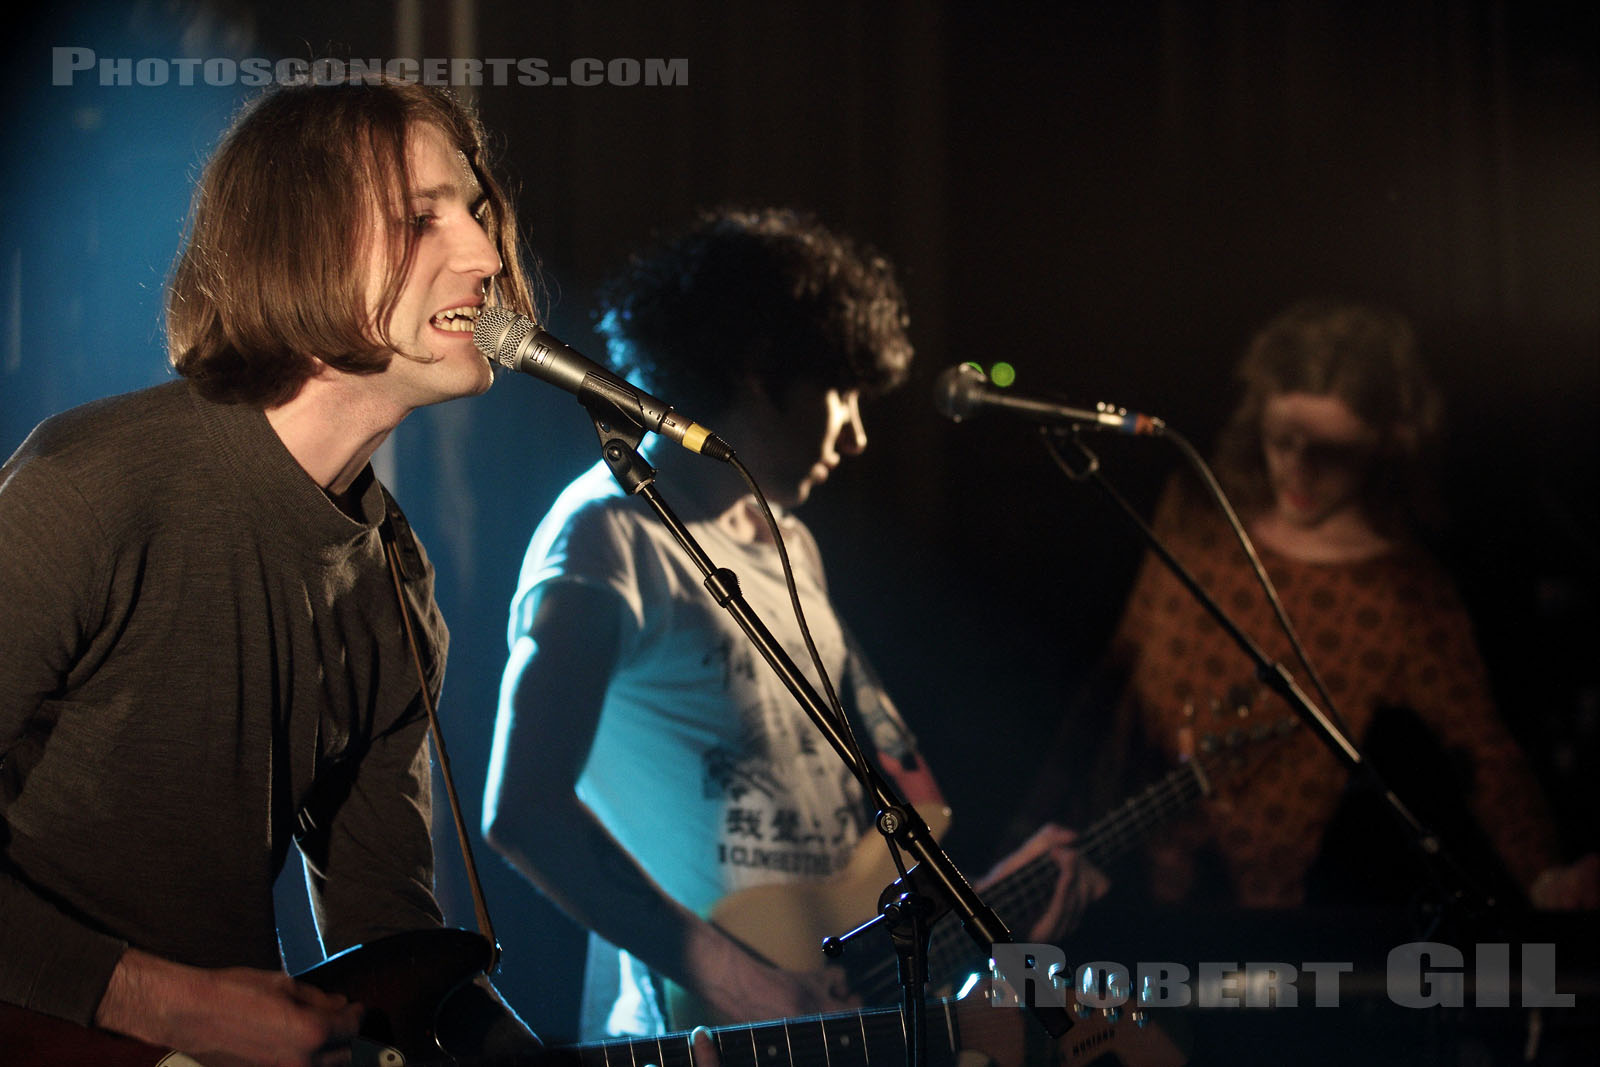 CHARLIE BOYER AND THE VOYEURS - 2013-04-20 - PARIS - La Maroquinerie